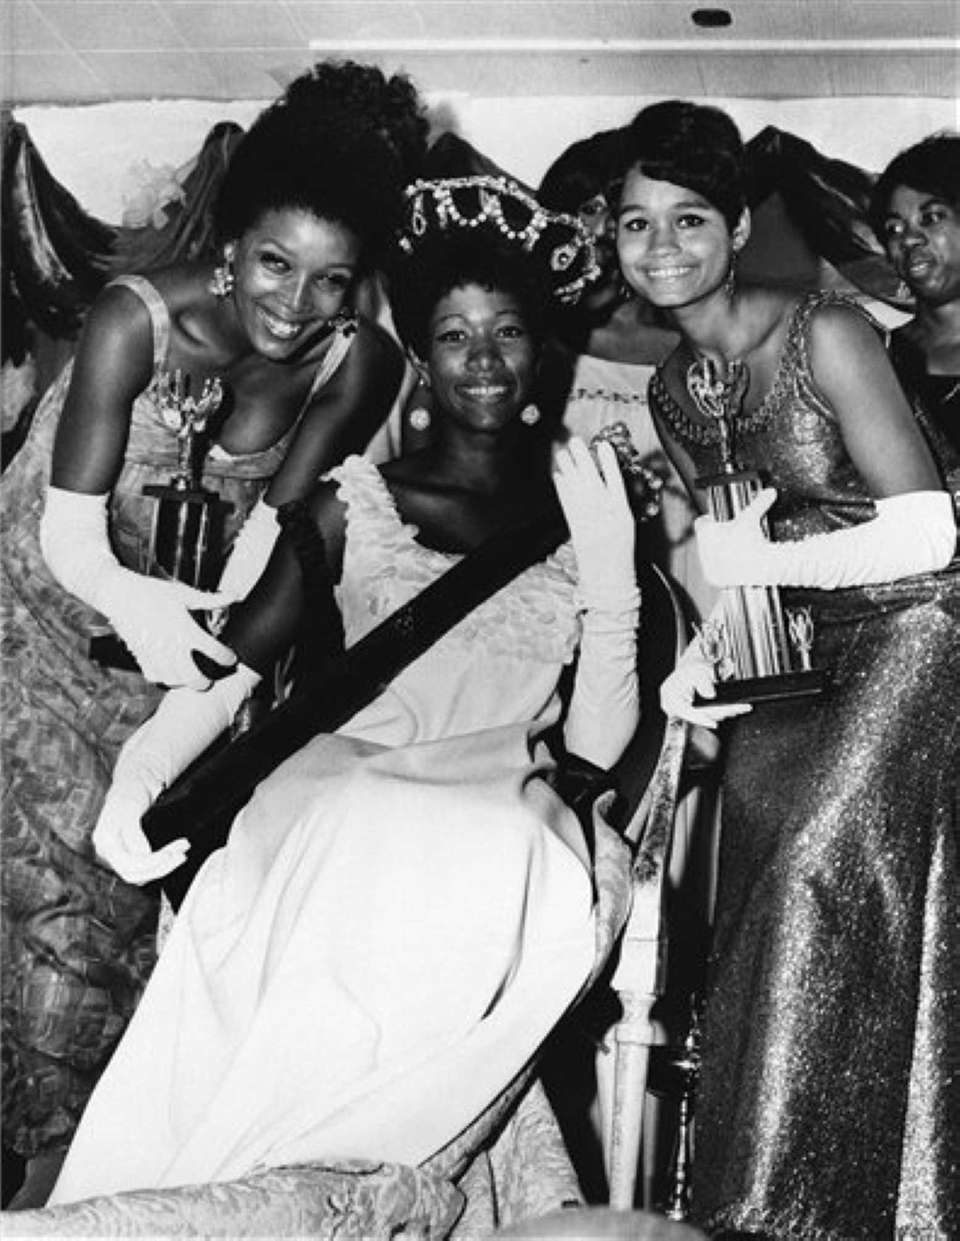 Saundra Williams, 19, center, of Philadelphia, was crowned